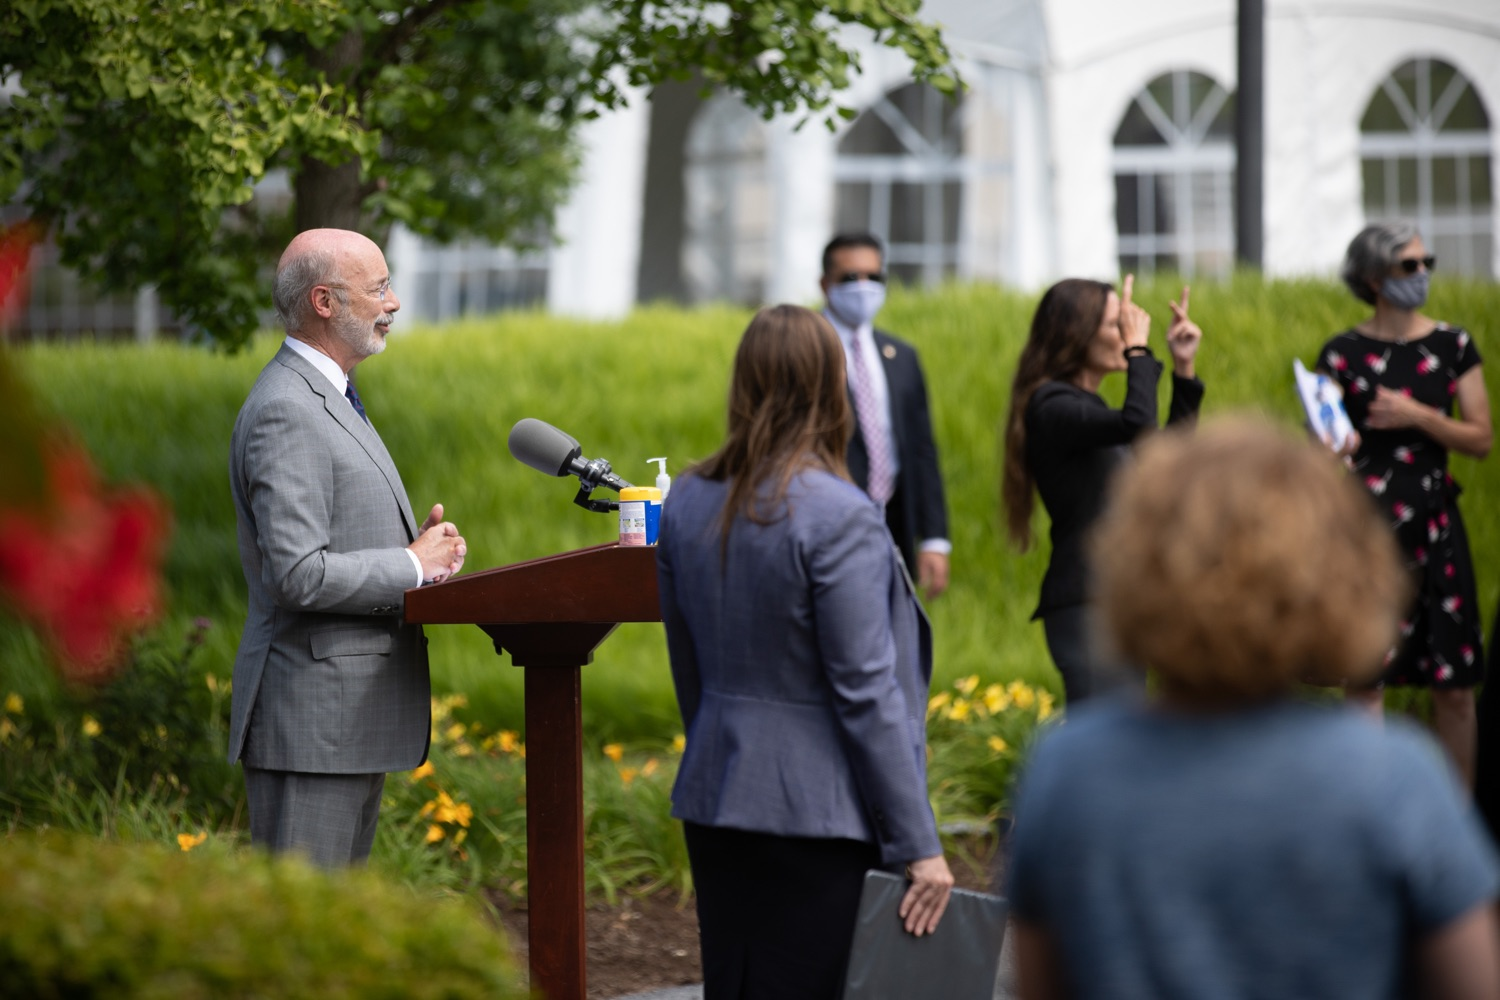 """<a href=""""https://filesource.wostreaming.net/commonwealthofpa/photo/18093_gov-healthcare_workers_dz_20.jpg"""" target=""""_blank"""">⇣Download Photo<br></a>Pennsylvania Governor Tom Wolf answering questions from the press during his visit to Milton S. Hershey Medical Center. As the commonwealth continues its measured, phased reopening and COVID-19 case counts continue to decline, Governor Tom Wolf visited Penn State Milton S. Hershey Medical Center today to thank staff and learn more about how the facility is handling the pandemic and preparing for a possible resurgence in the fall.  Harrisburg, PA  June 24, 2020"""